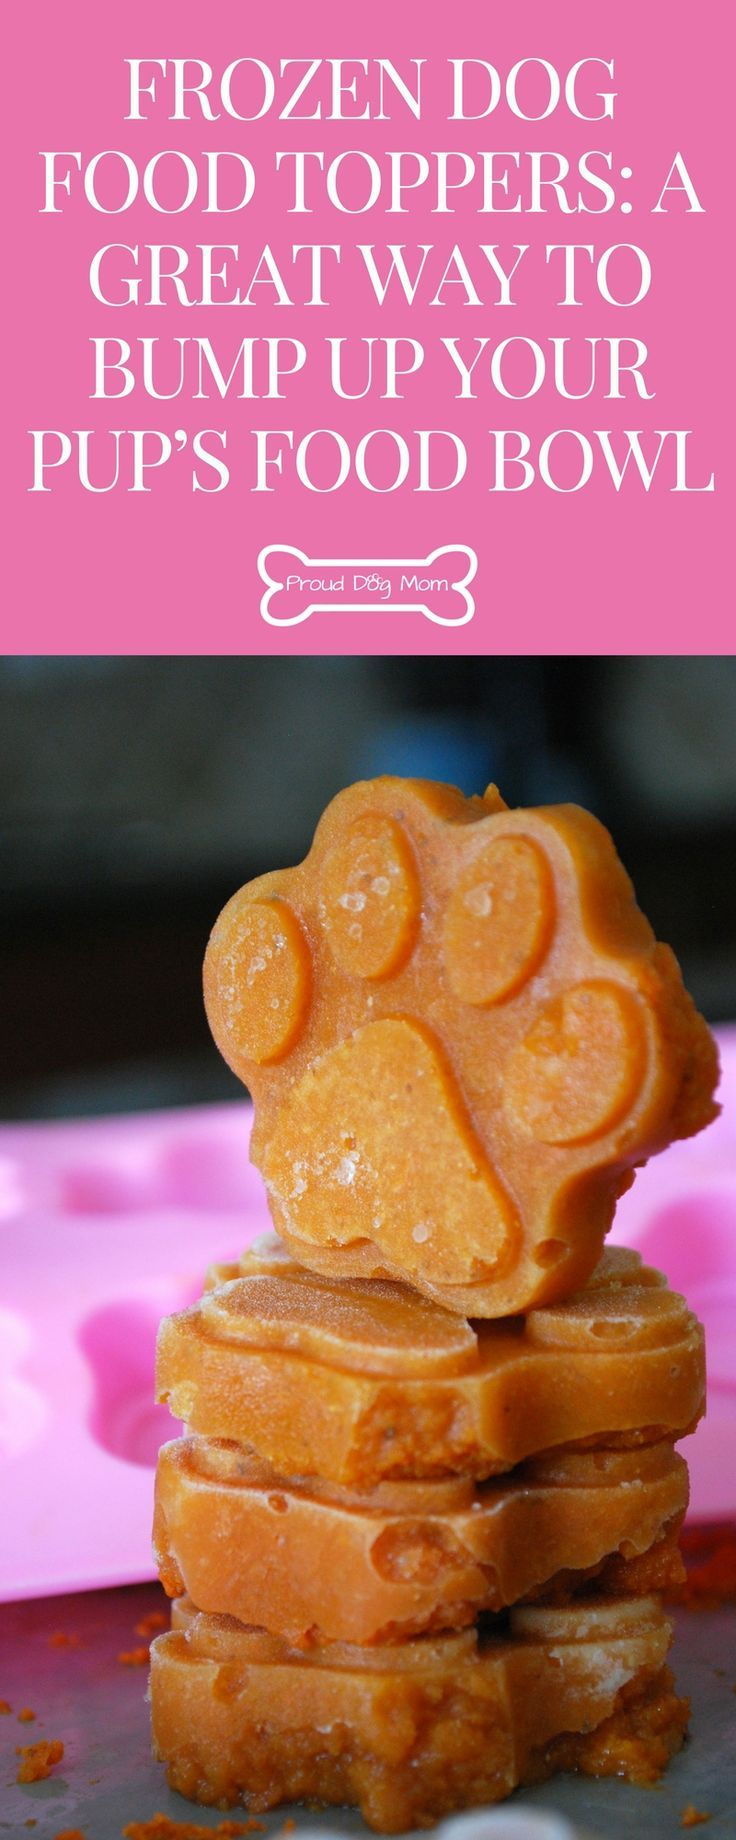 Frozen Dog Food Toppers Recipe